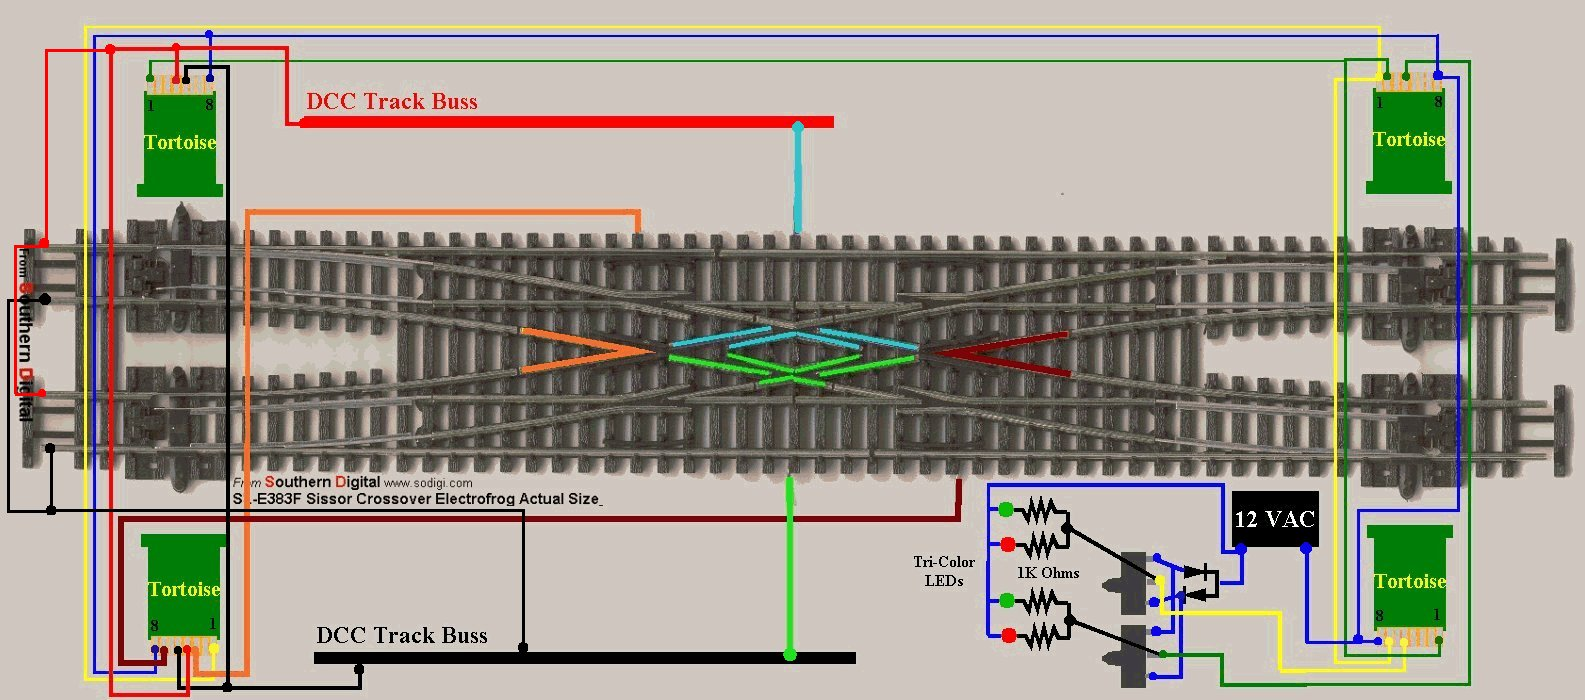 Dcc Model Railway Wiring Diagrams: n peco code 55rh:sodigi.com,Design